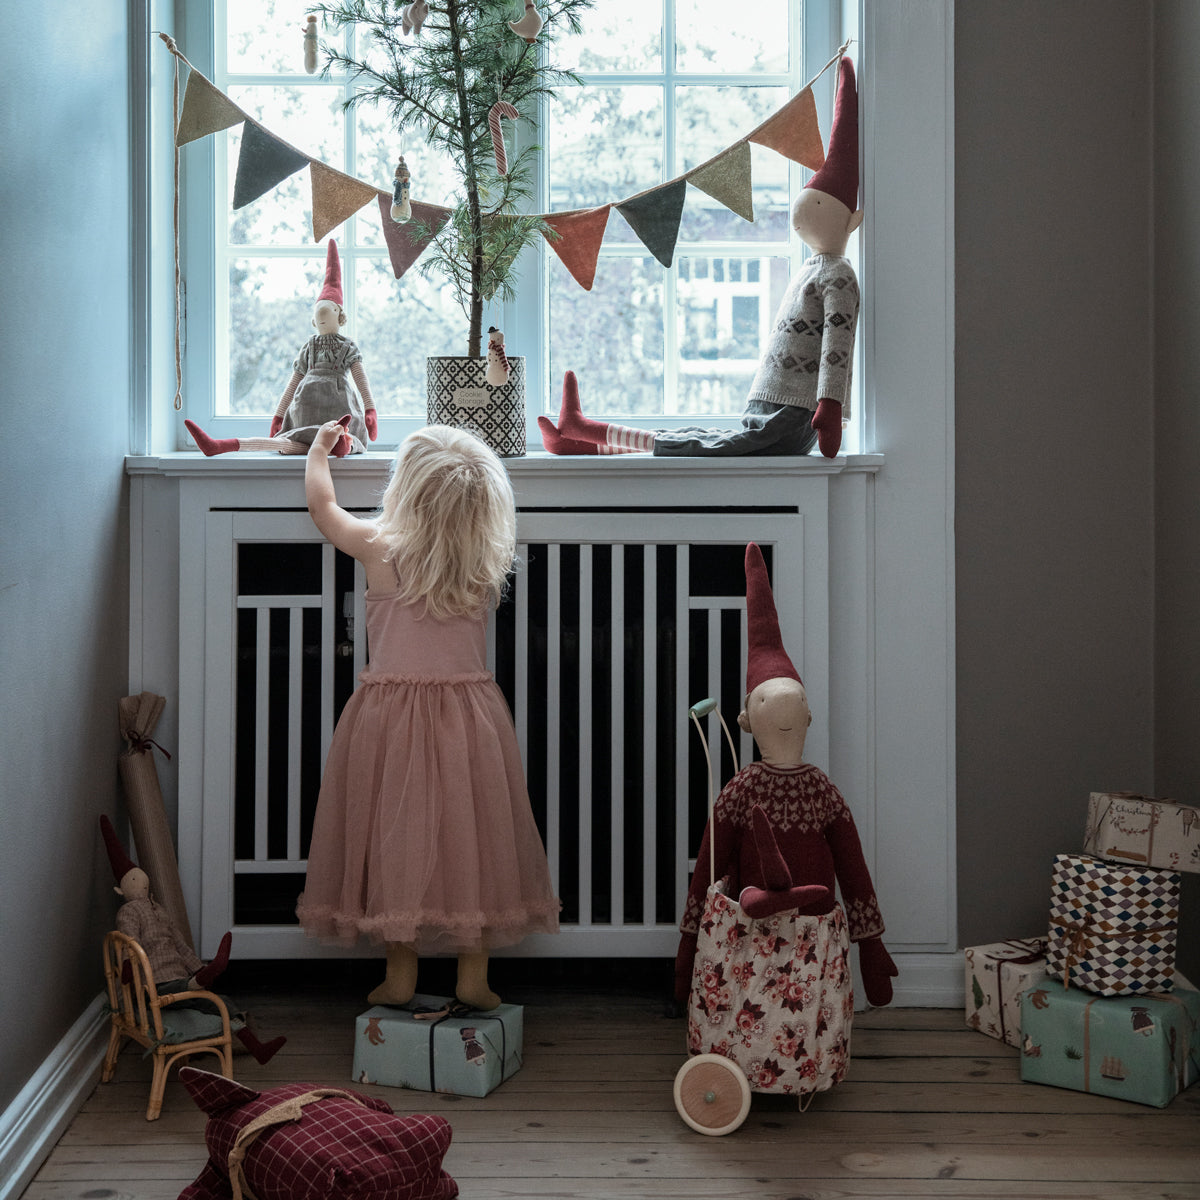 Maileg Garland 9 flags knit - multi colour Children's interiors